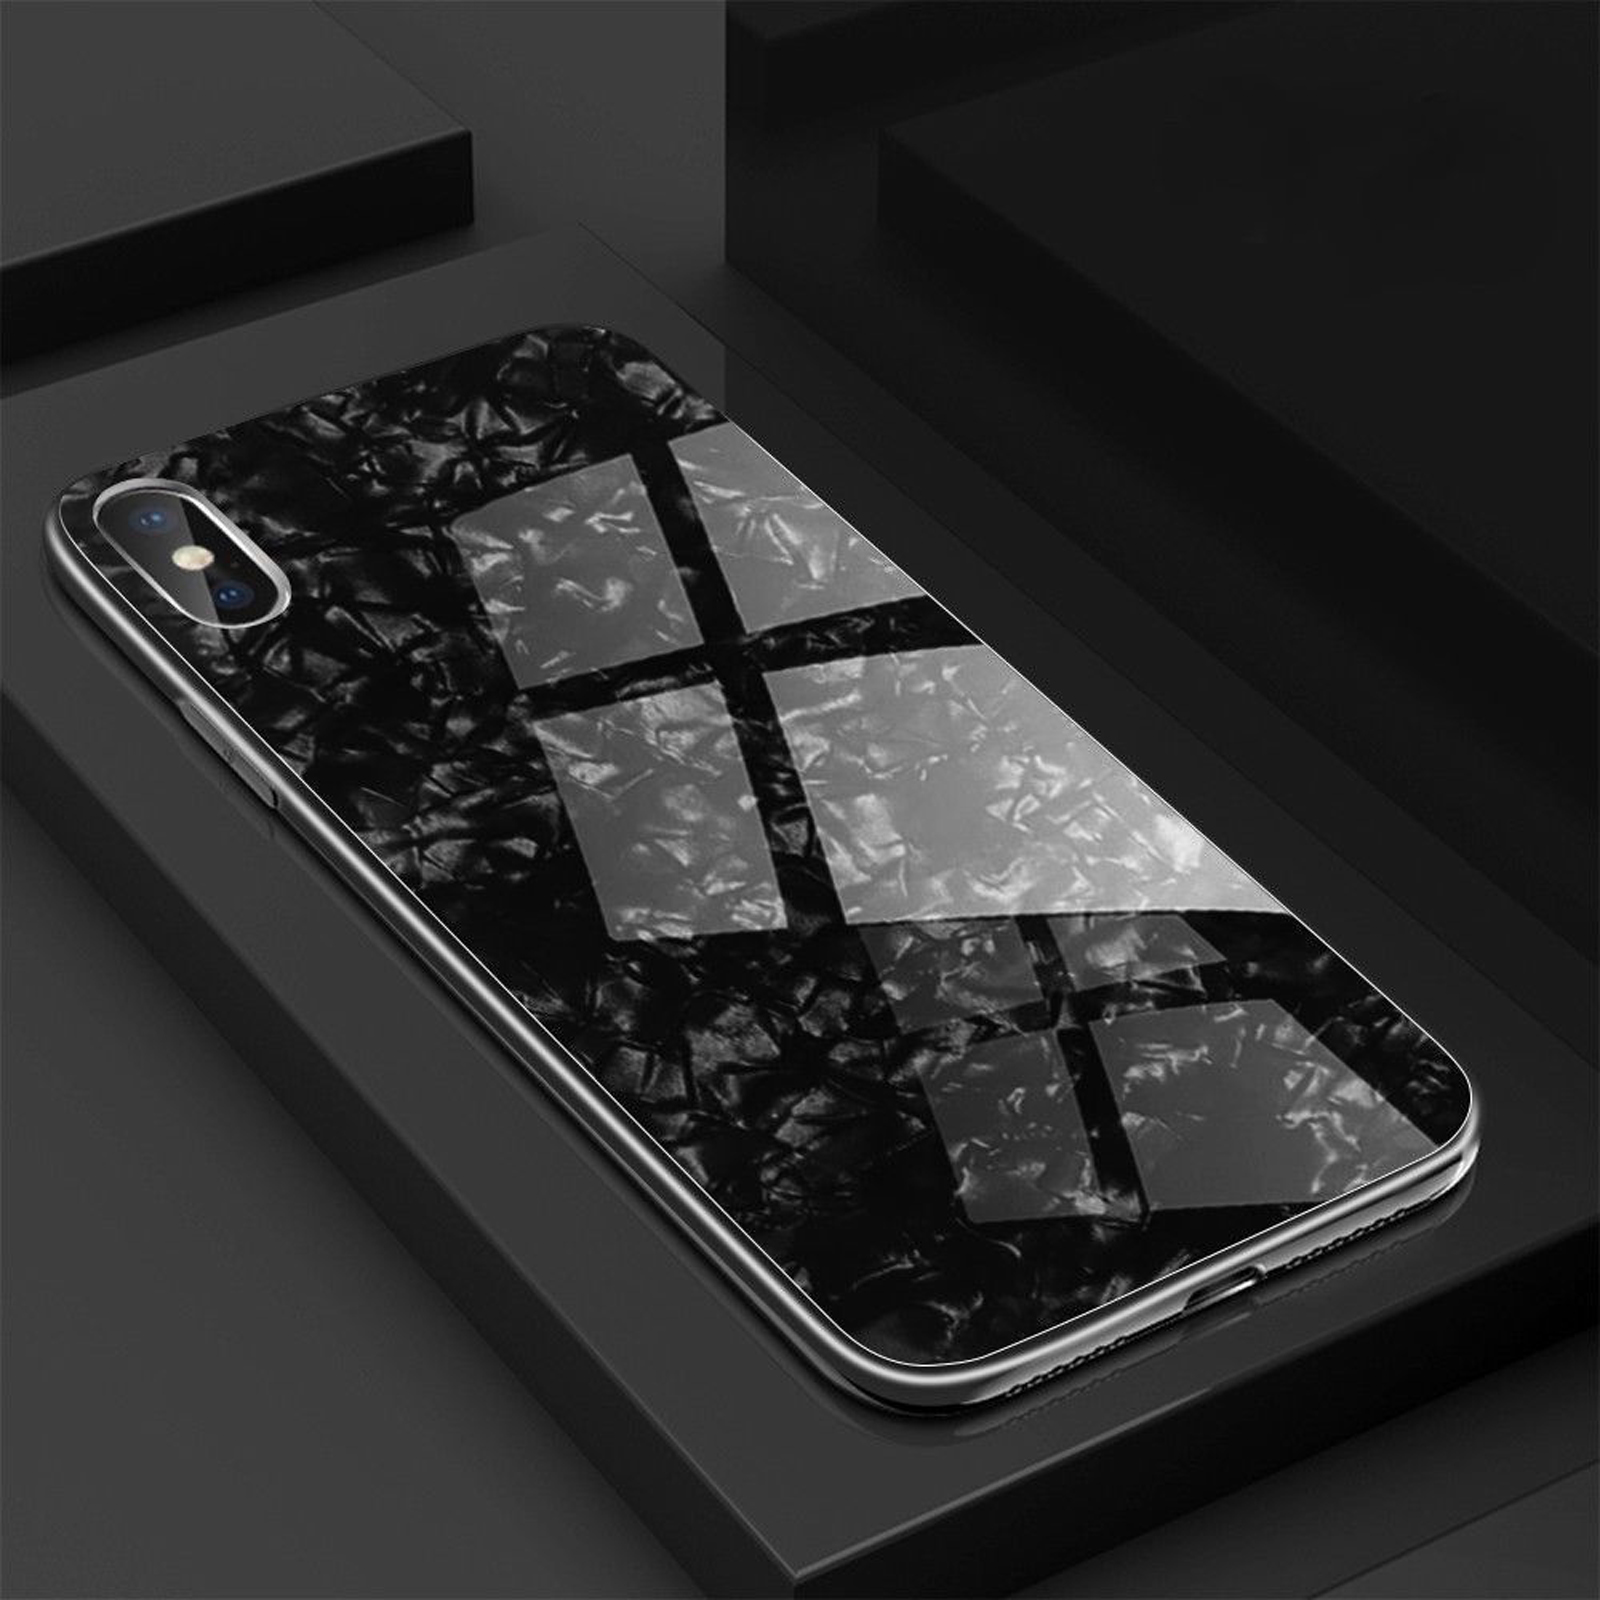 Luxury-Marble-Tempered-Glass-Case-Cover-For-Apple-iPhone-X-XS-XR-Max-10-8-7-6s-6 miniature 23